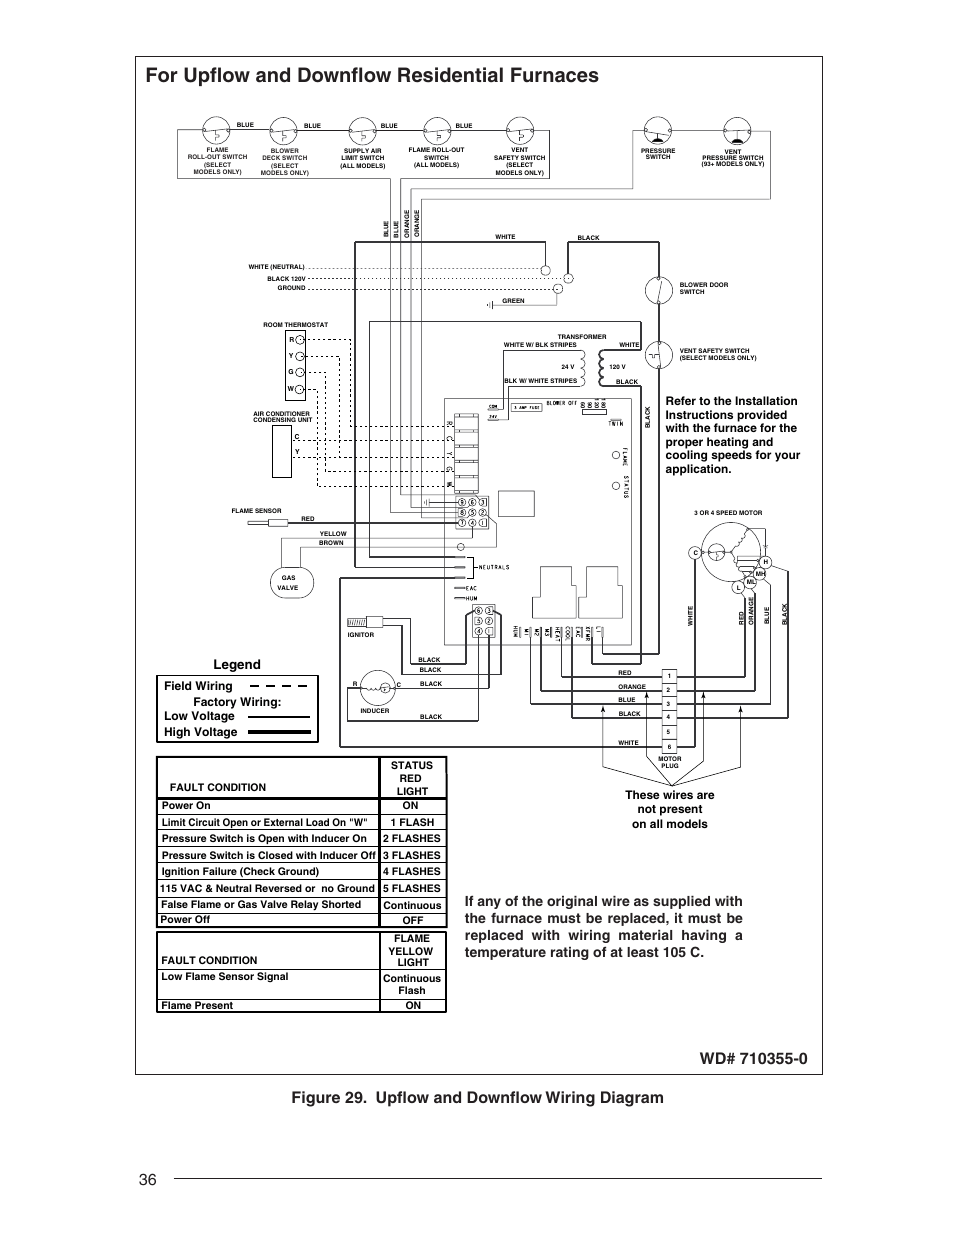 Luxaire Furnace Thermostat Wiring Diagrams Gas Color Code Heat Pump Diagram Heating And Air